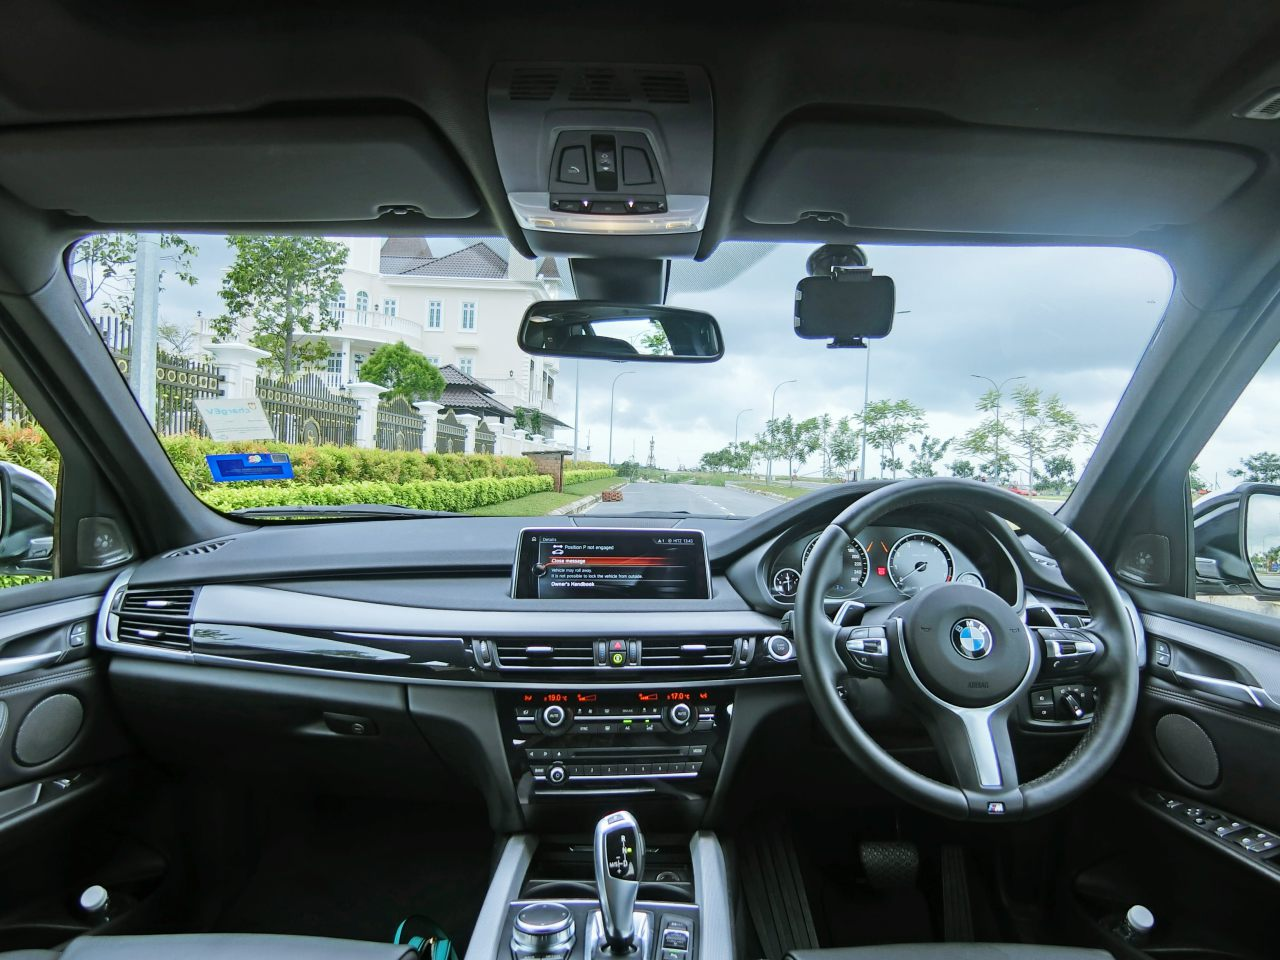 BMW X5 xDrive40e interior review kingssleeve - [test drive]BMW X5 xDrive40e 强势设计 豪华体验!